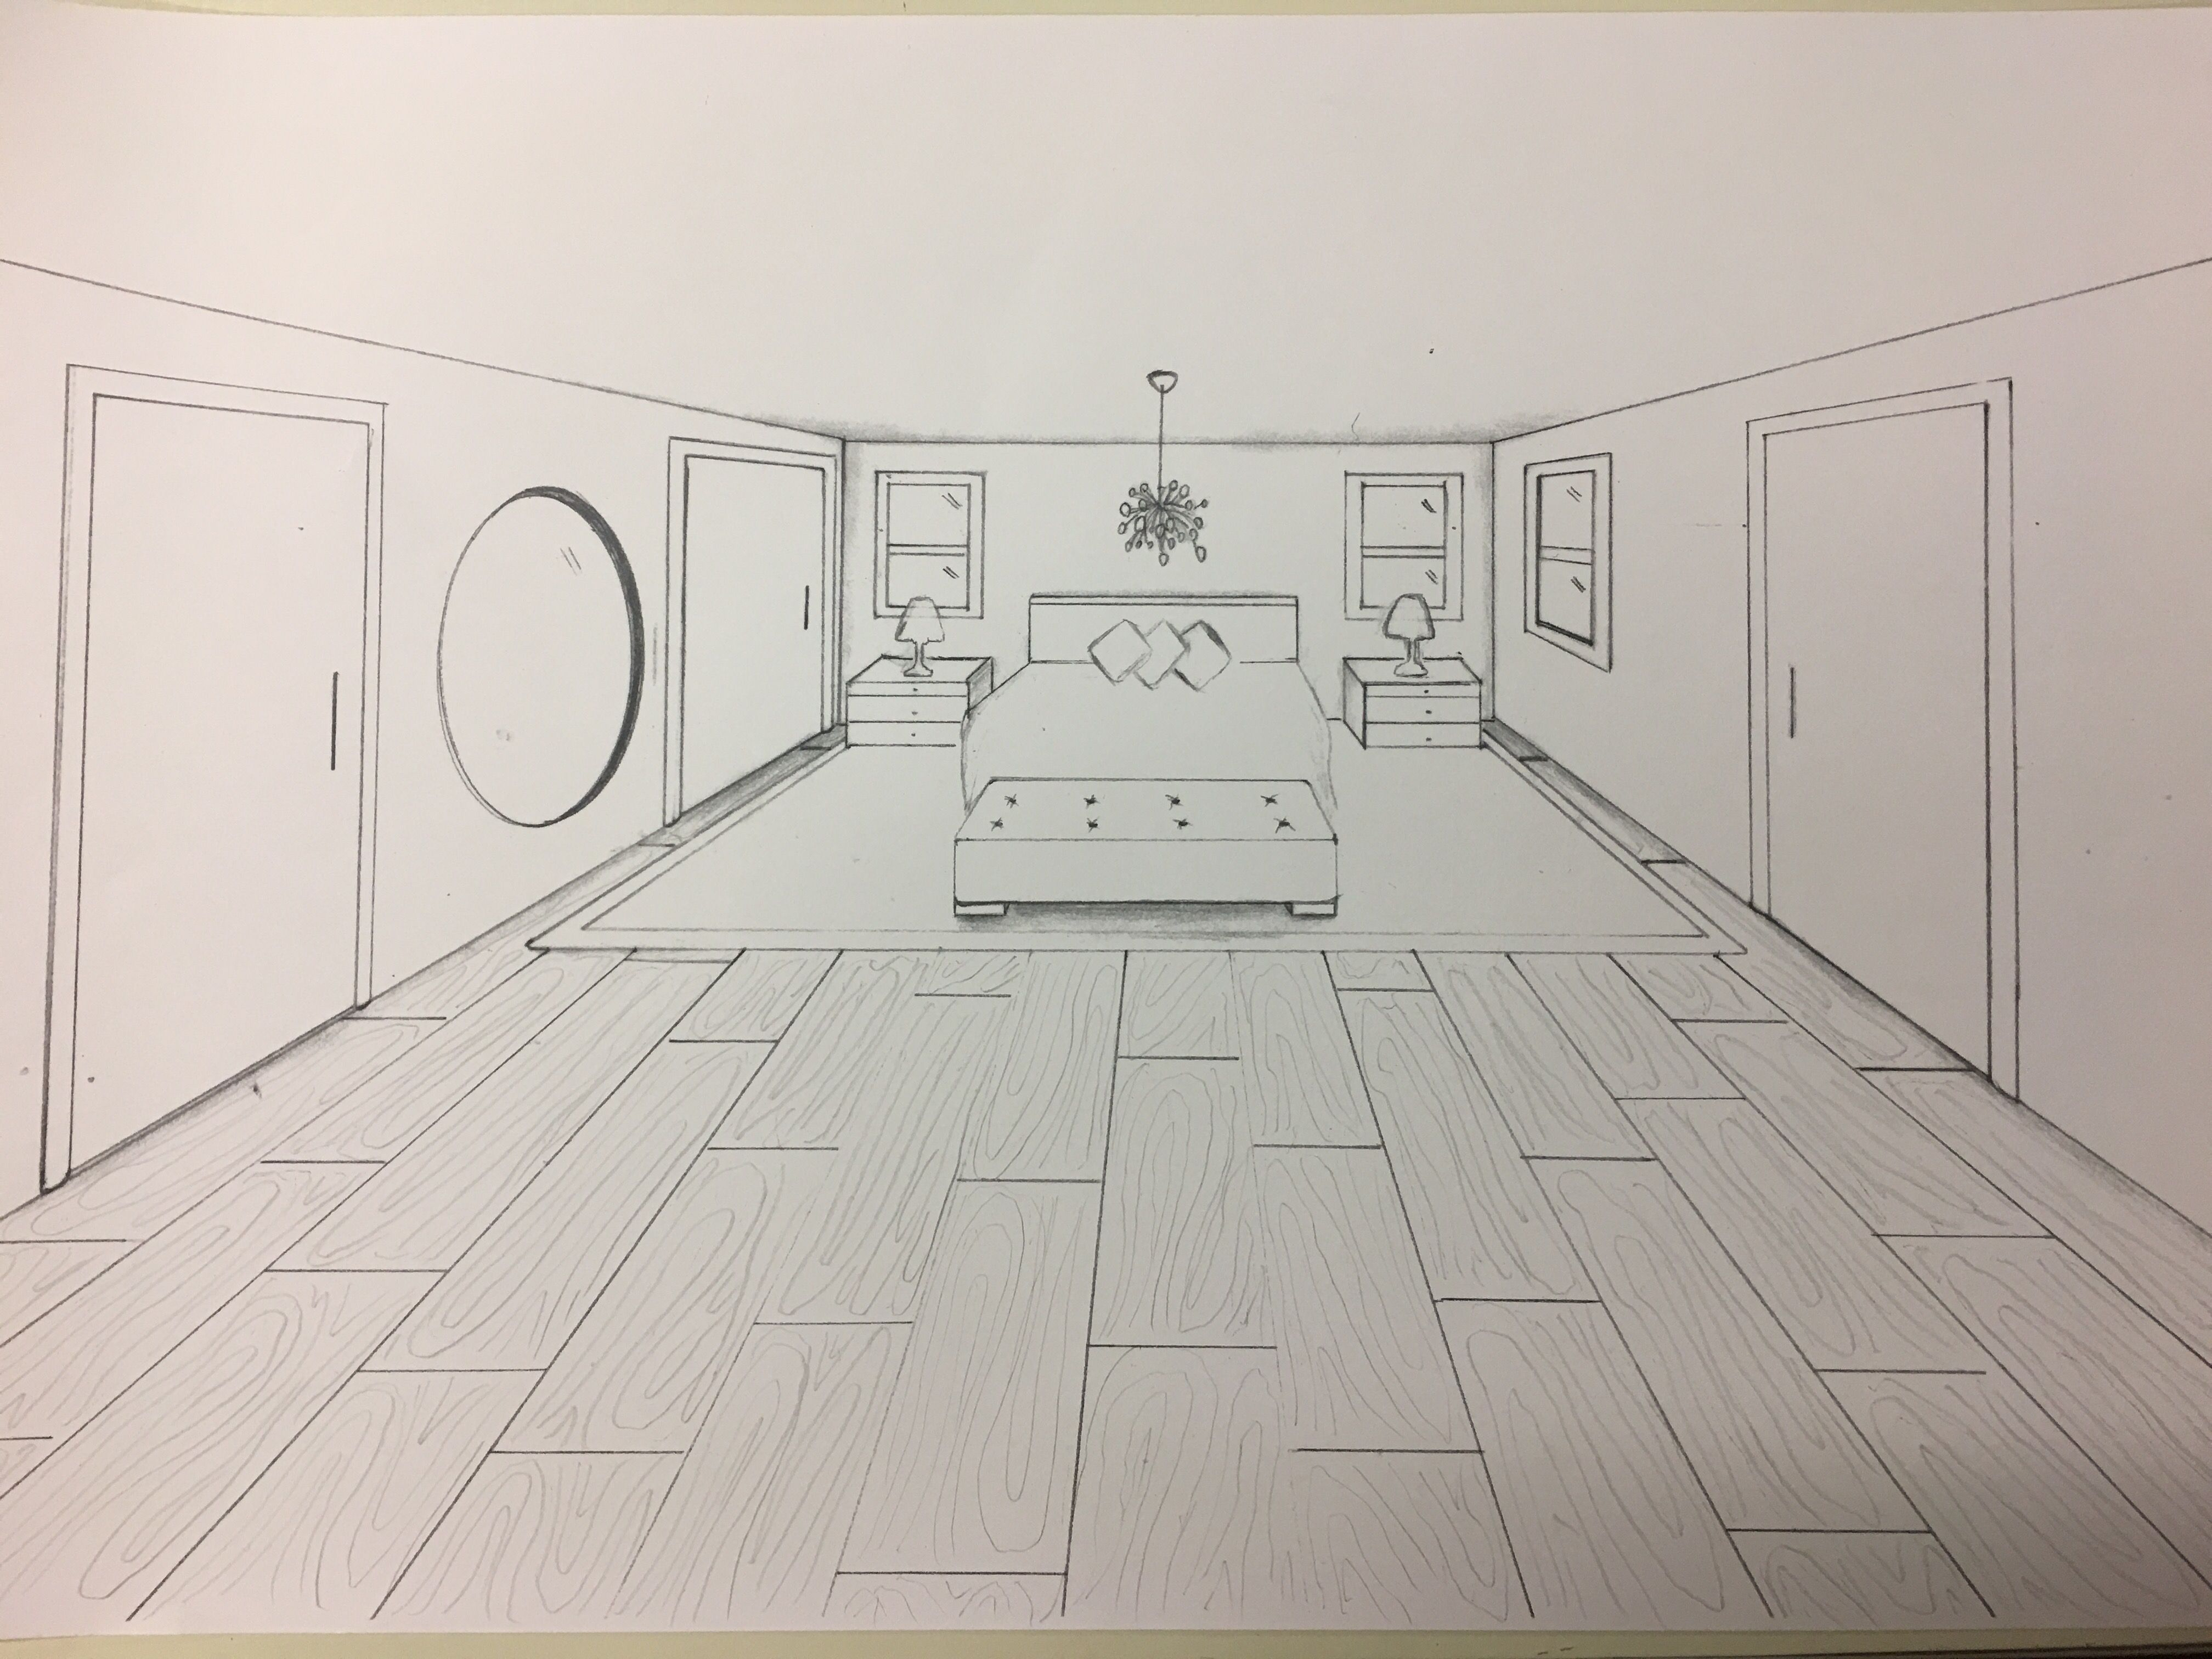 Master Bedroom In 1 Point Perspective Perspective Room One Point Perspective Room Perspective Drawing Architecture